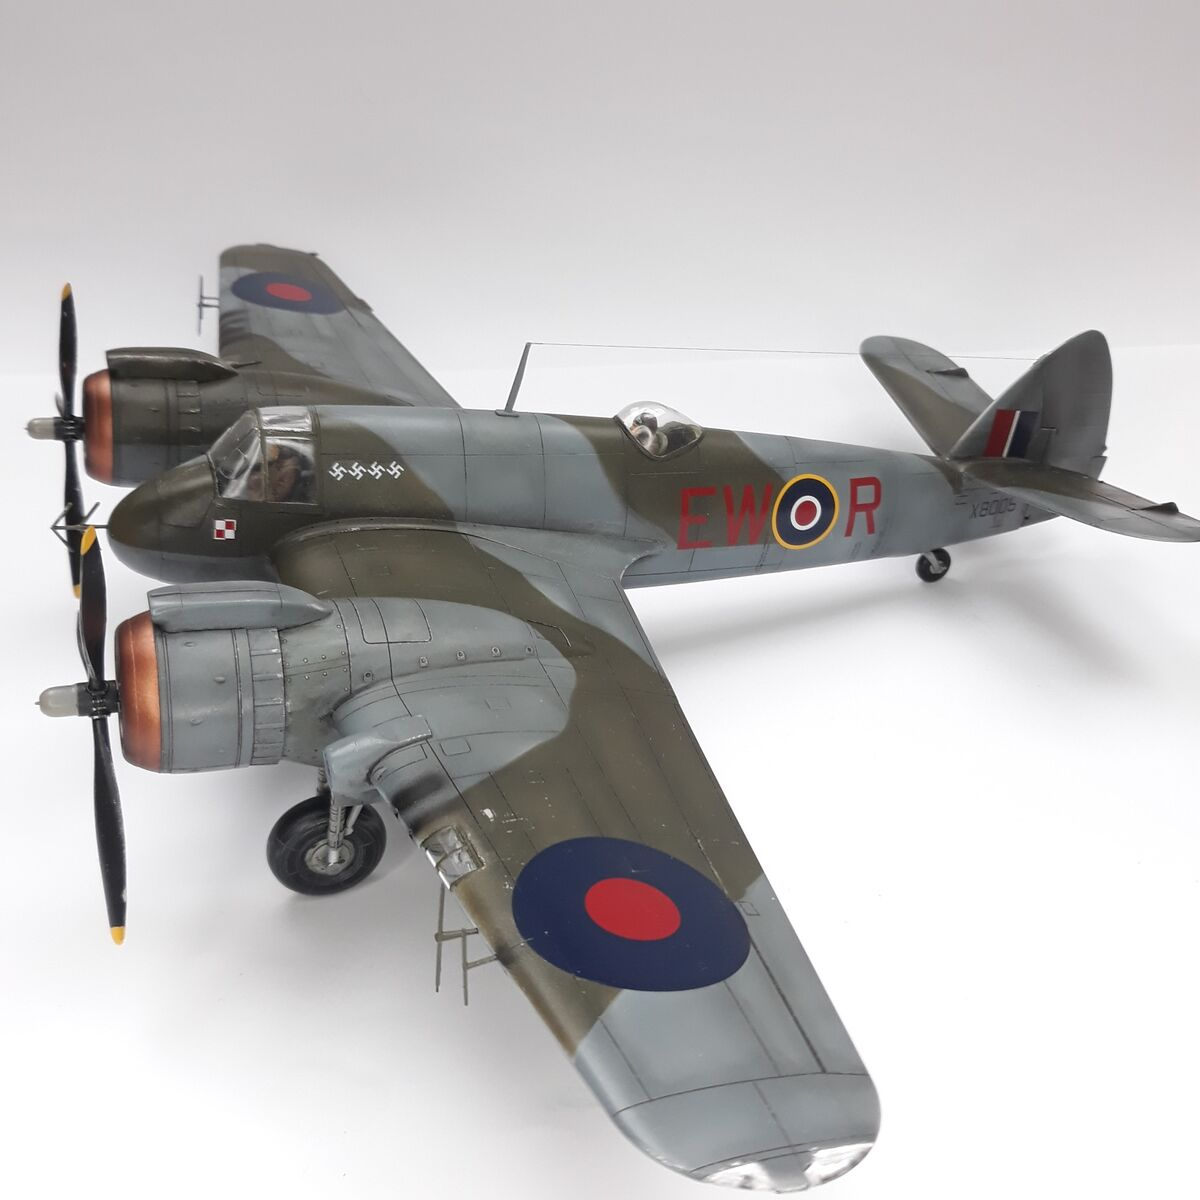 Beaufighter Mk.VI dyw.307 - 002 - Image 1